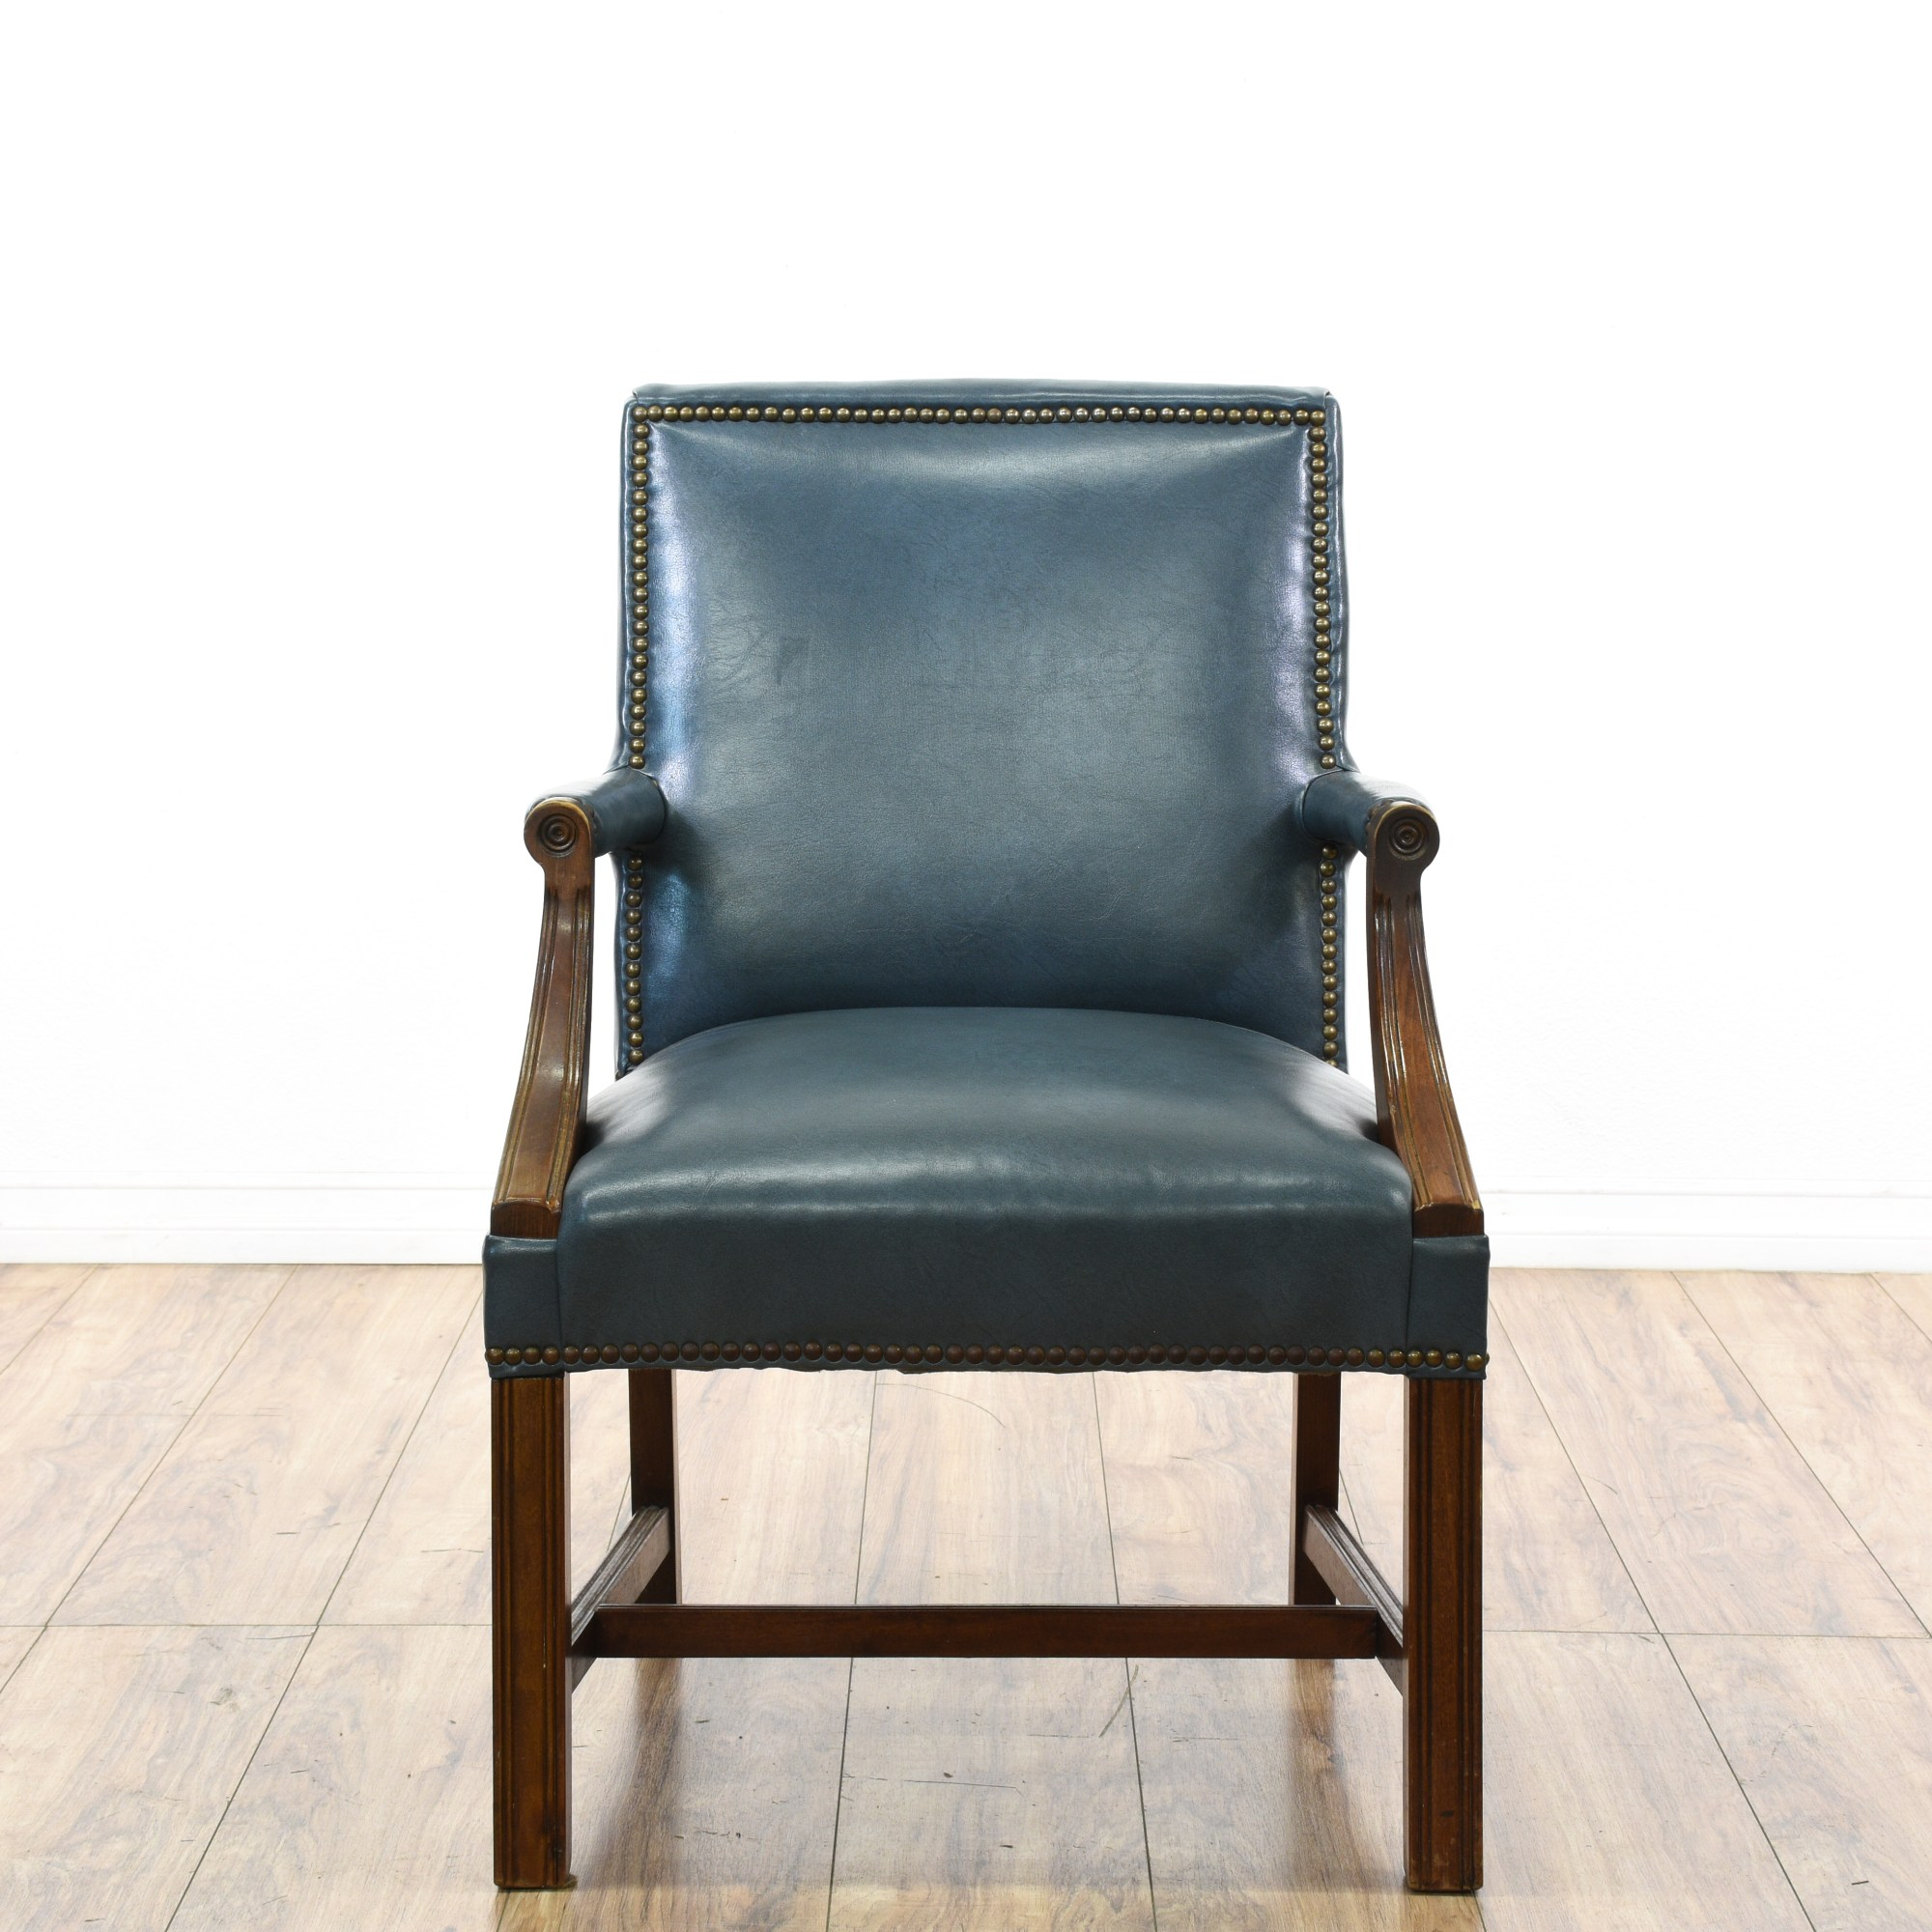 Teal Leather Chair Teal Blue Vinyl Wood Carved Executive Chair Loveseat